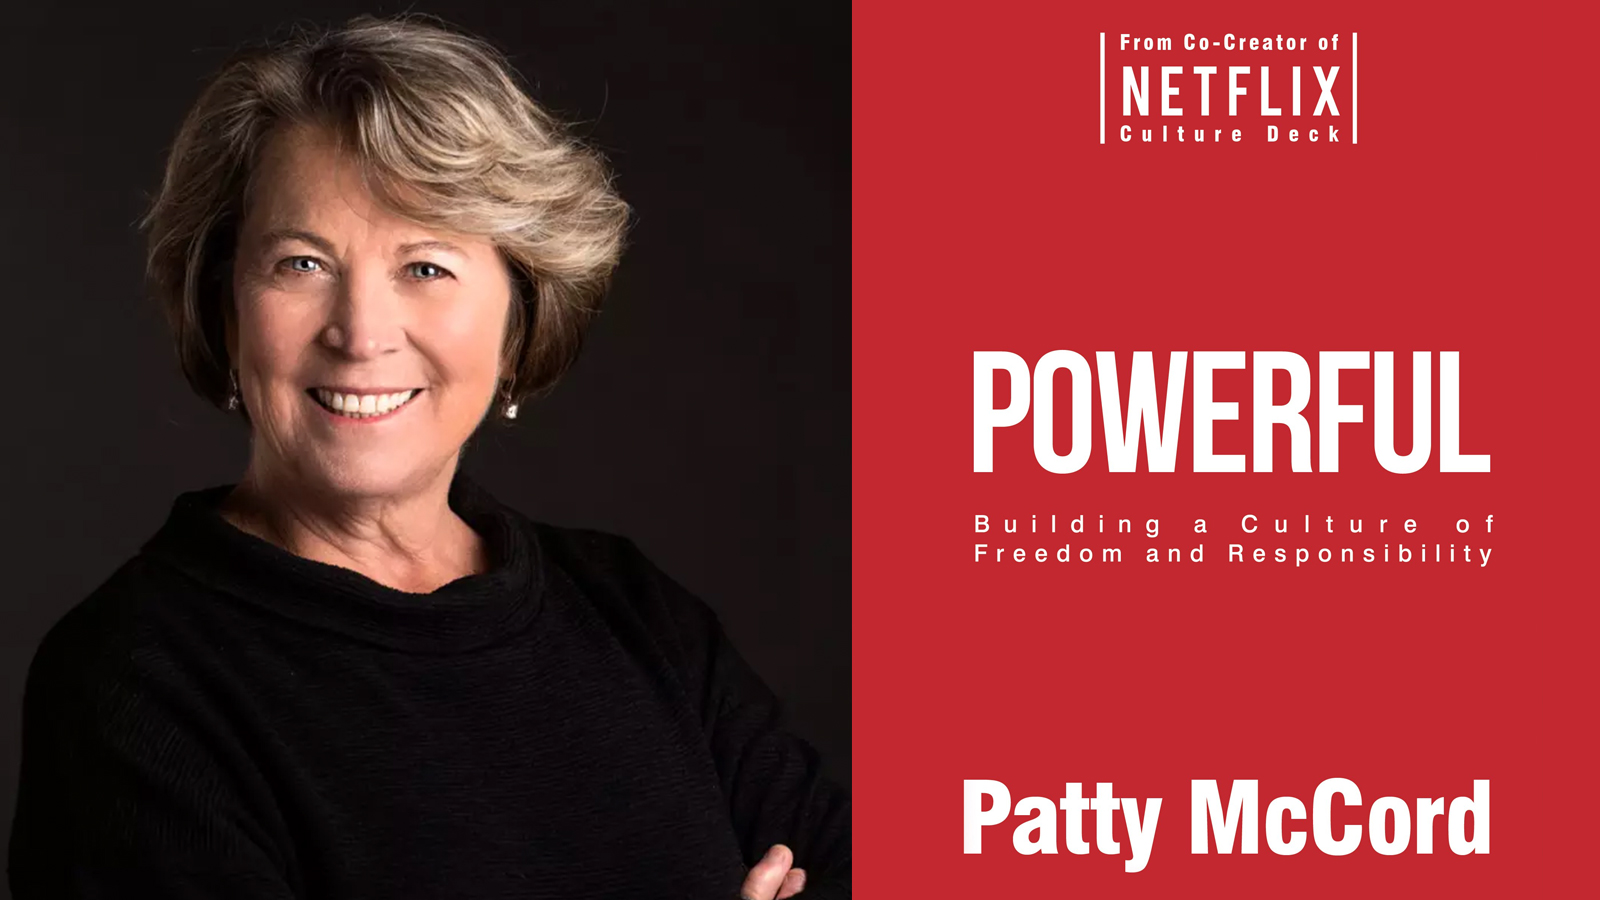 Former Netflix Chief Talent Officer Patty McCord on how to